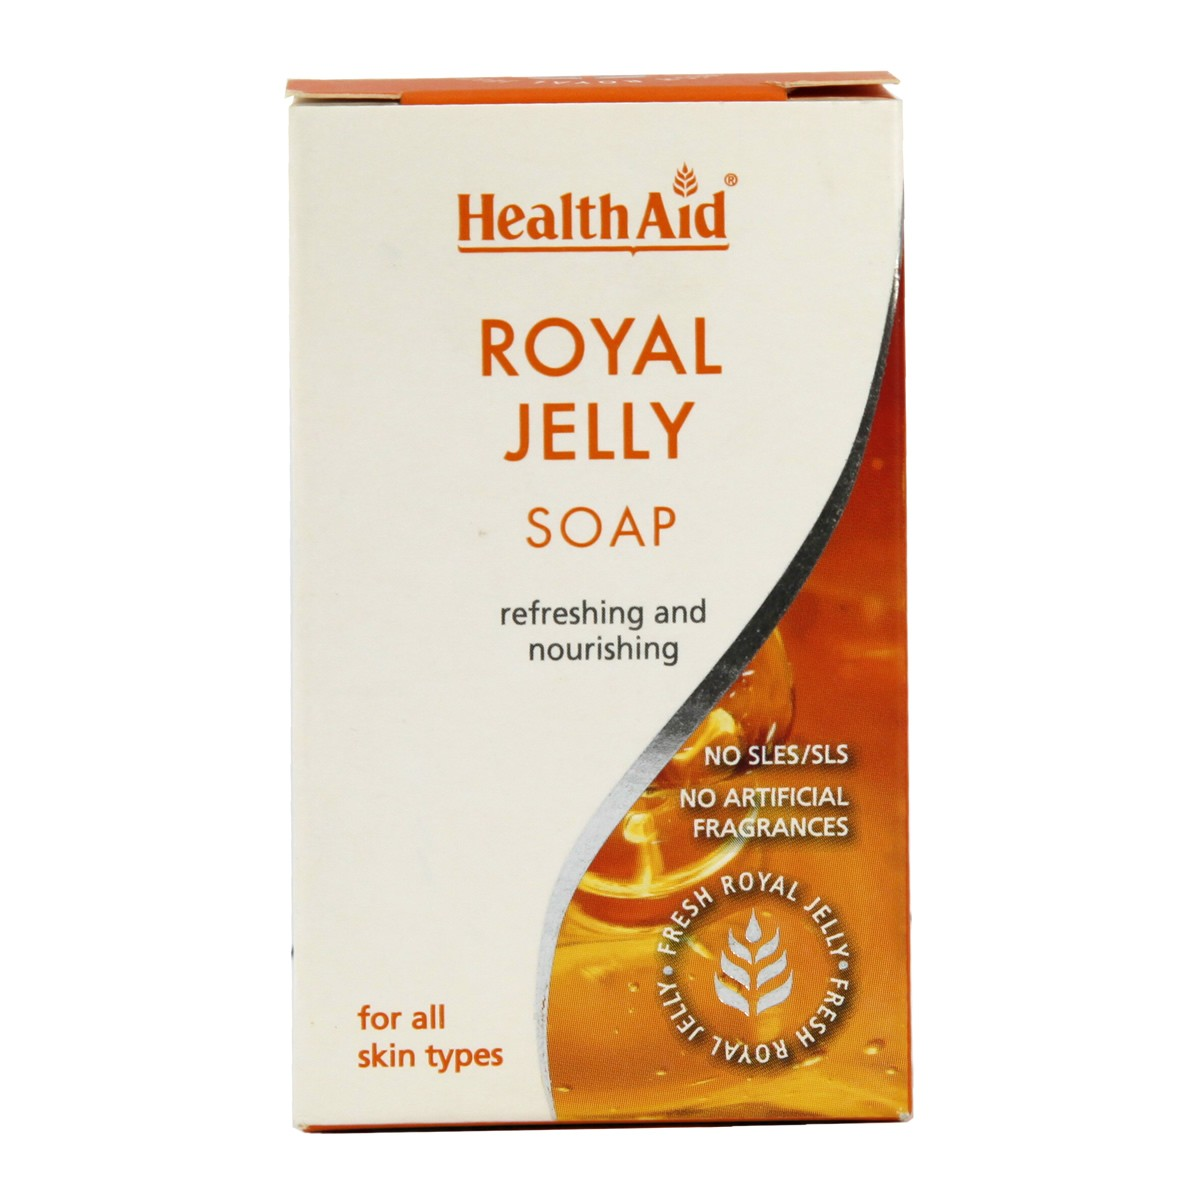 Health Aid Royal Jelly Soap